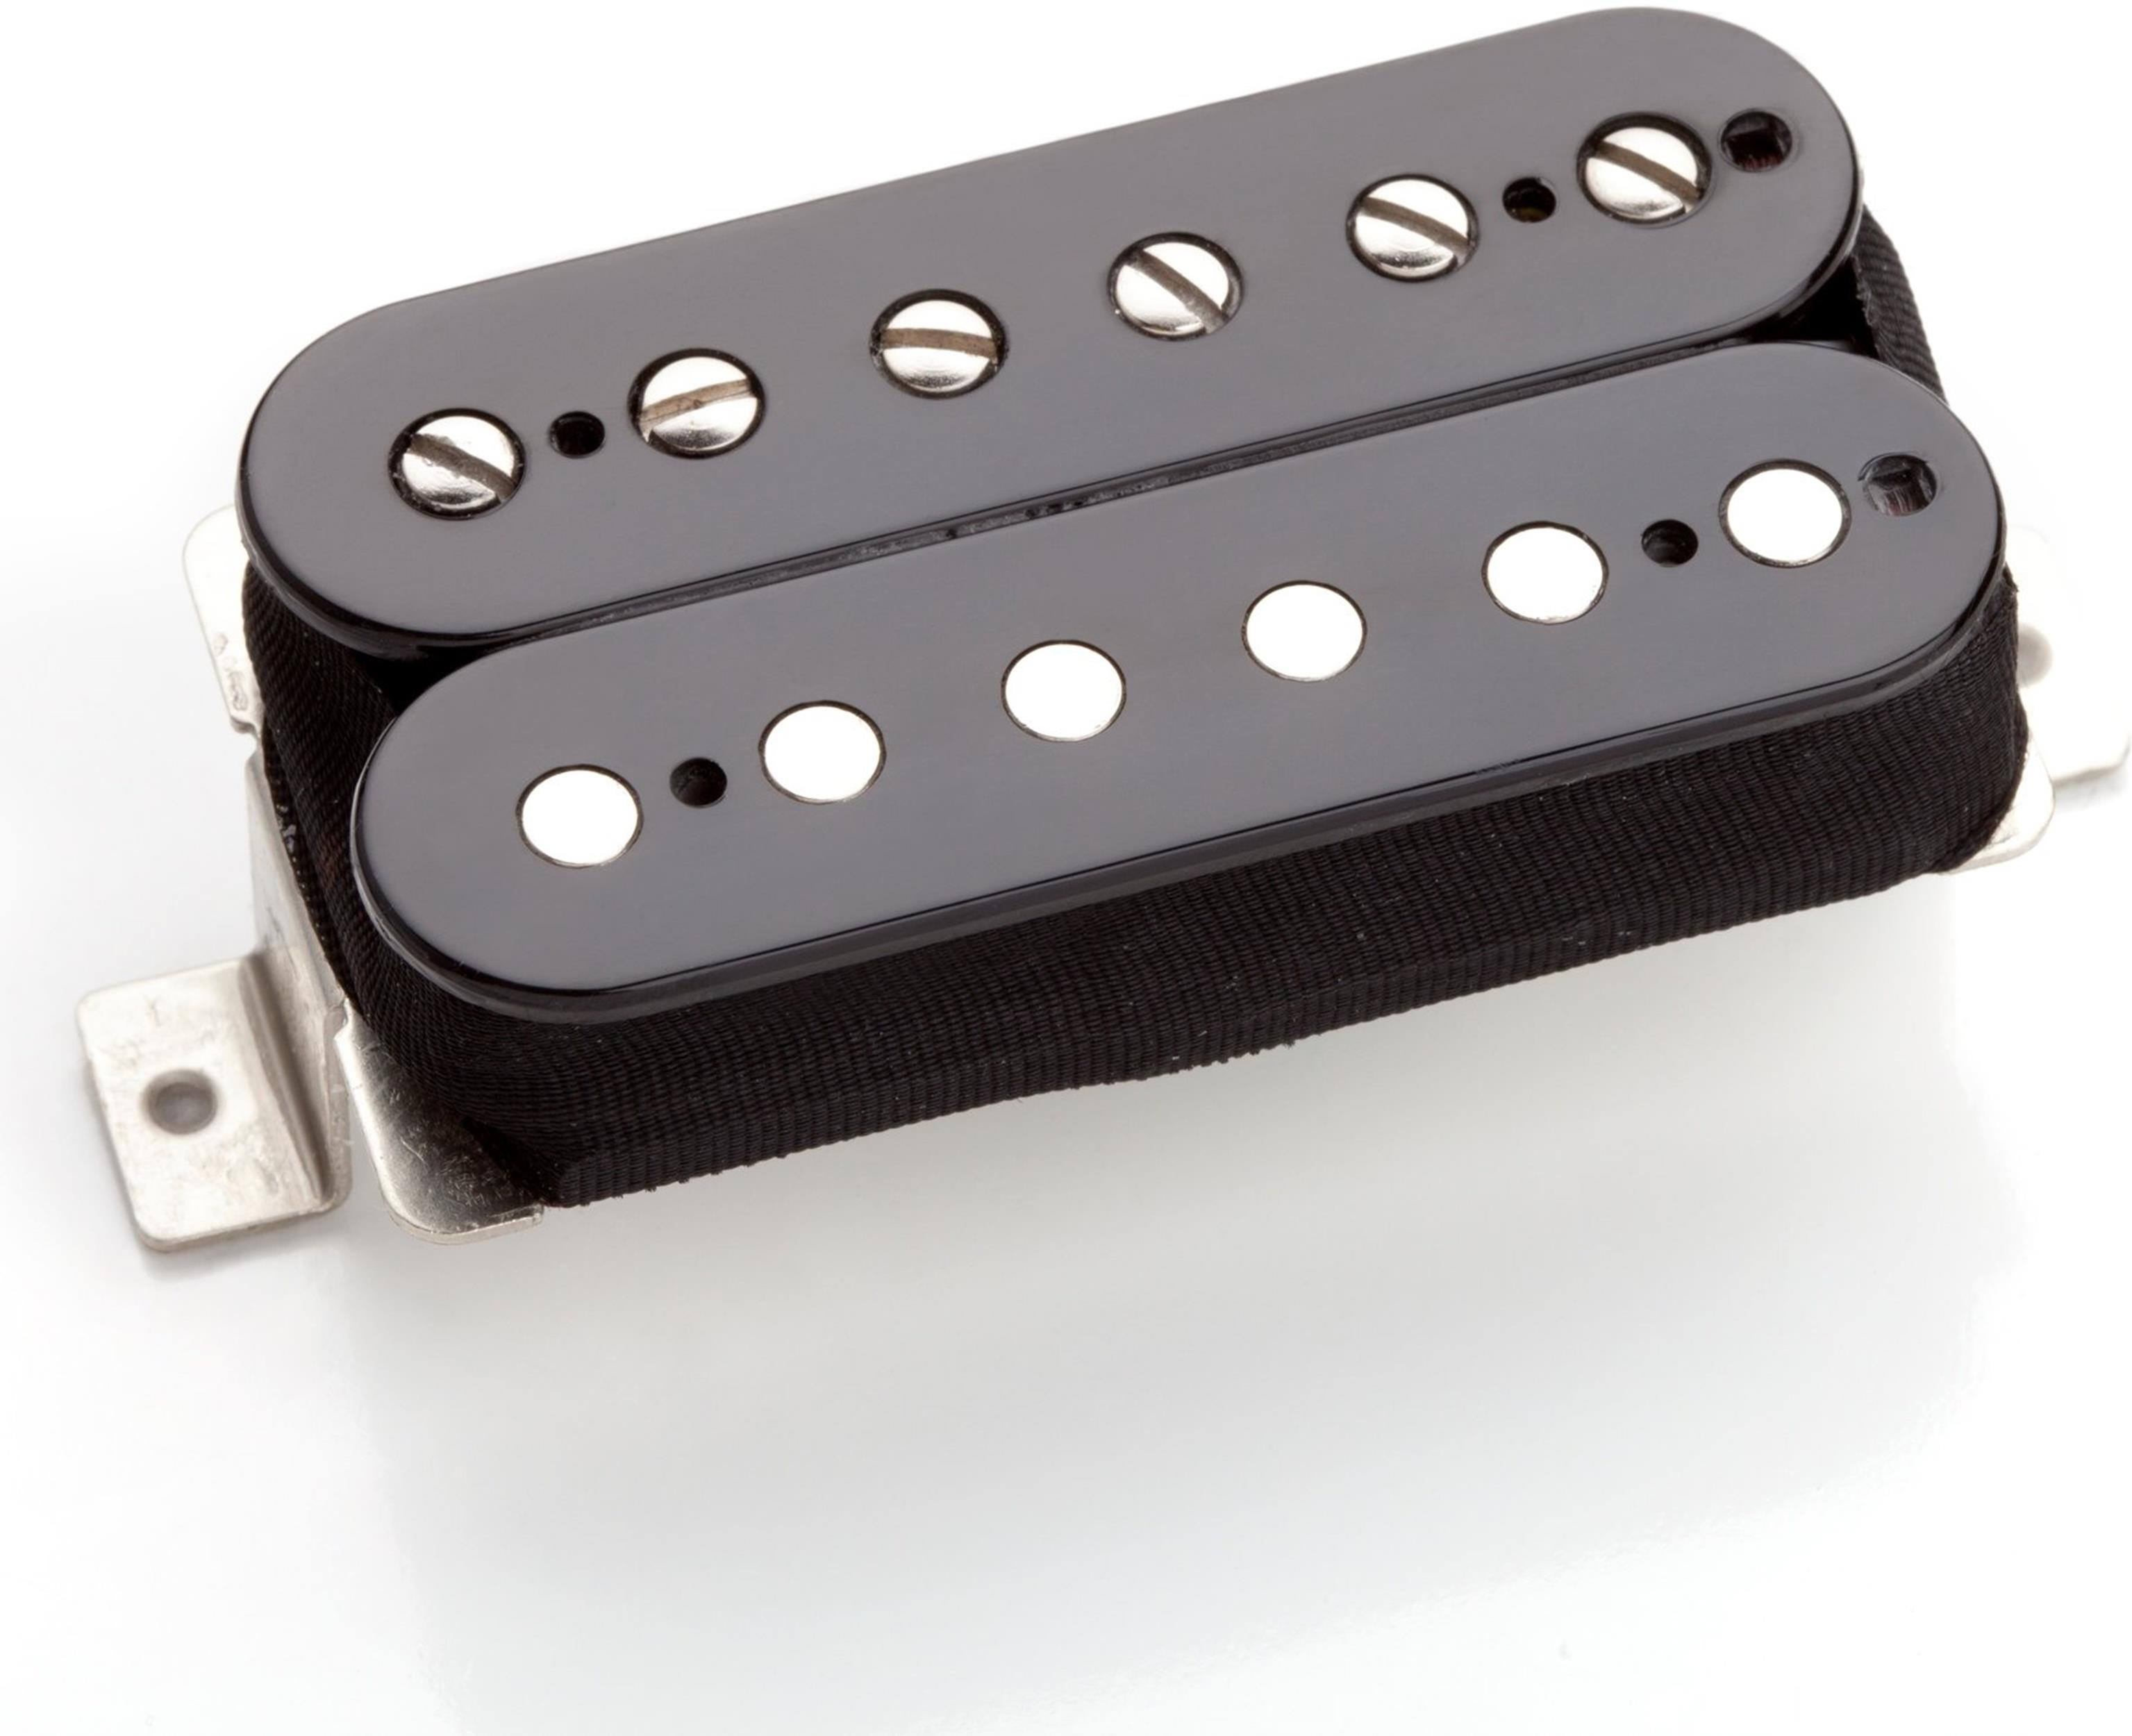 SEYMOUR-DUNCAN SH 1 B 4C 59 MODEL BLACK BRIDGE